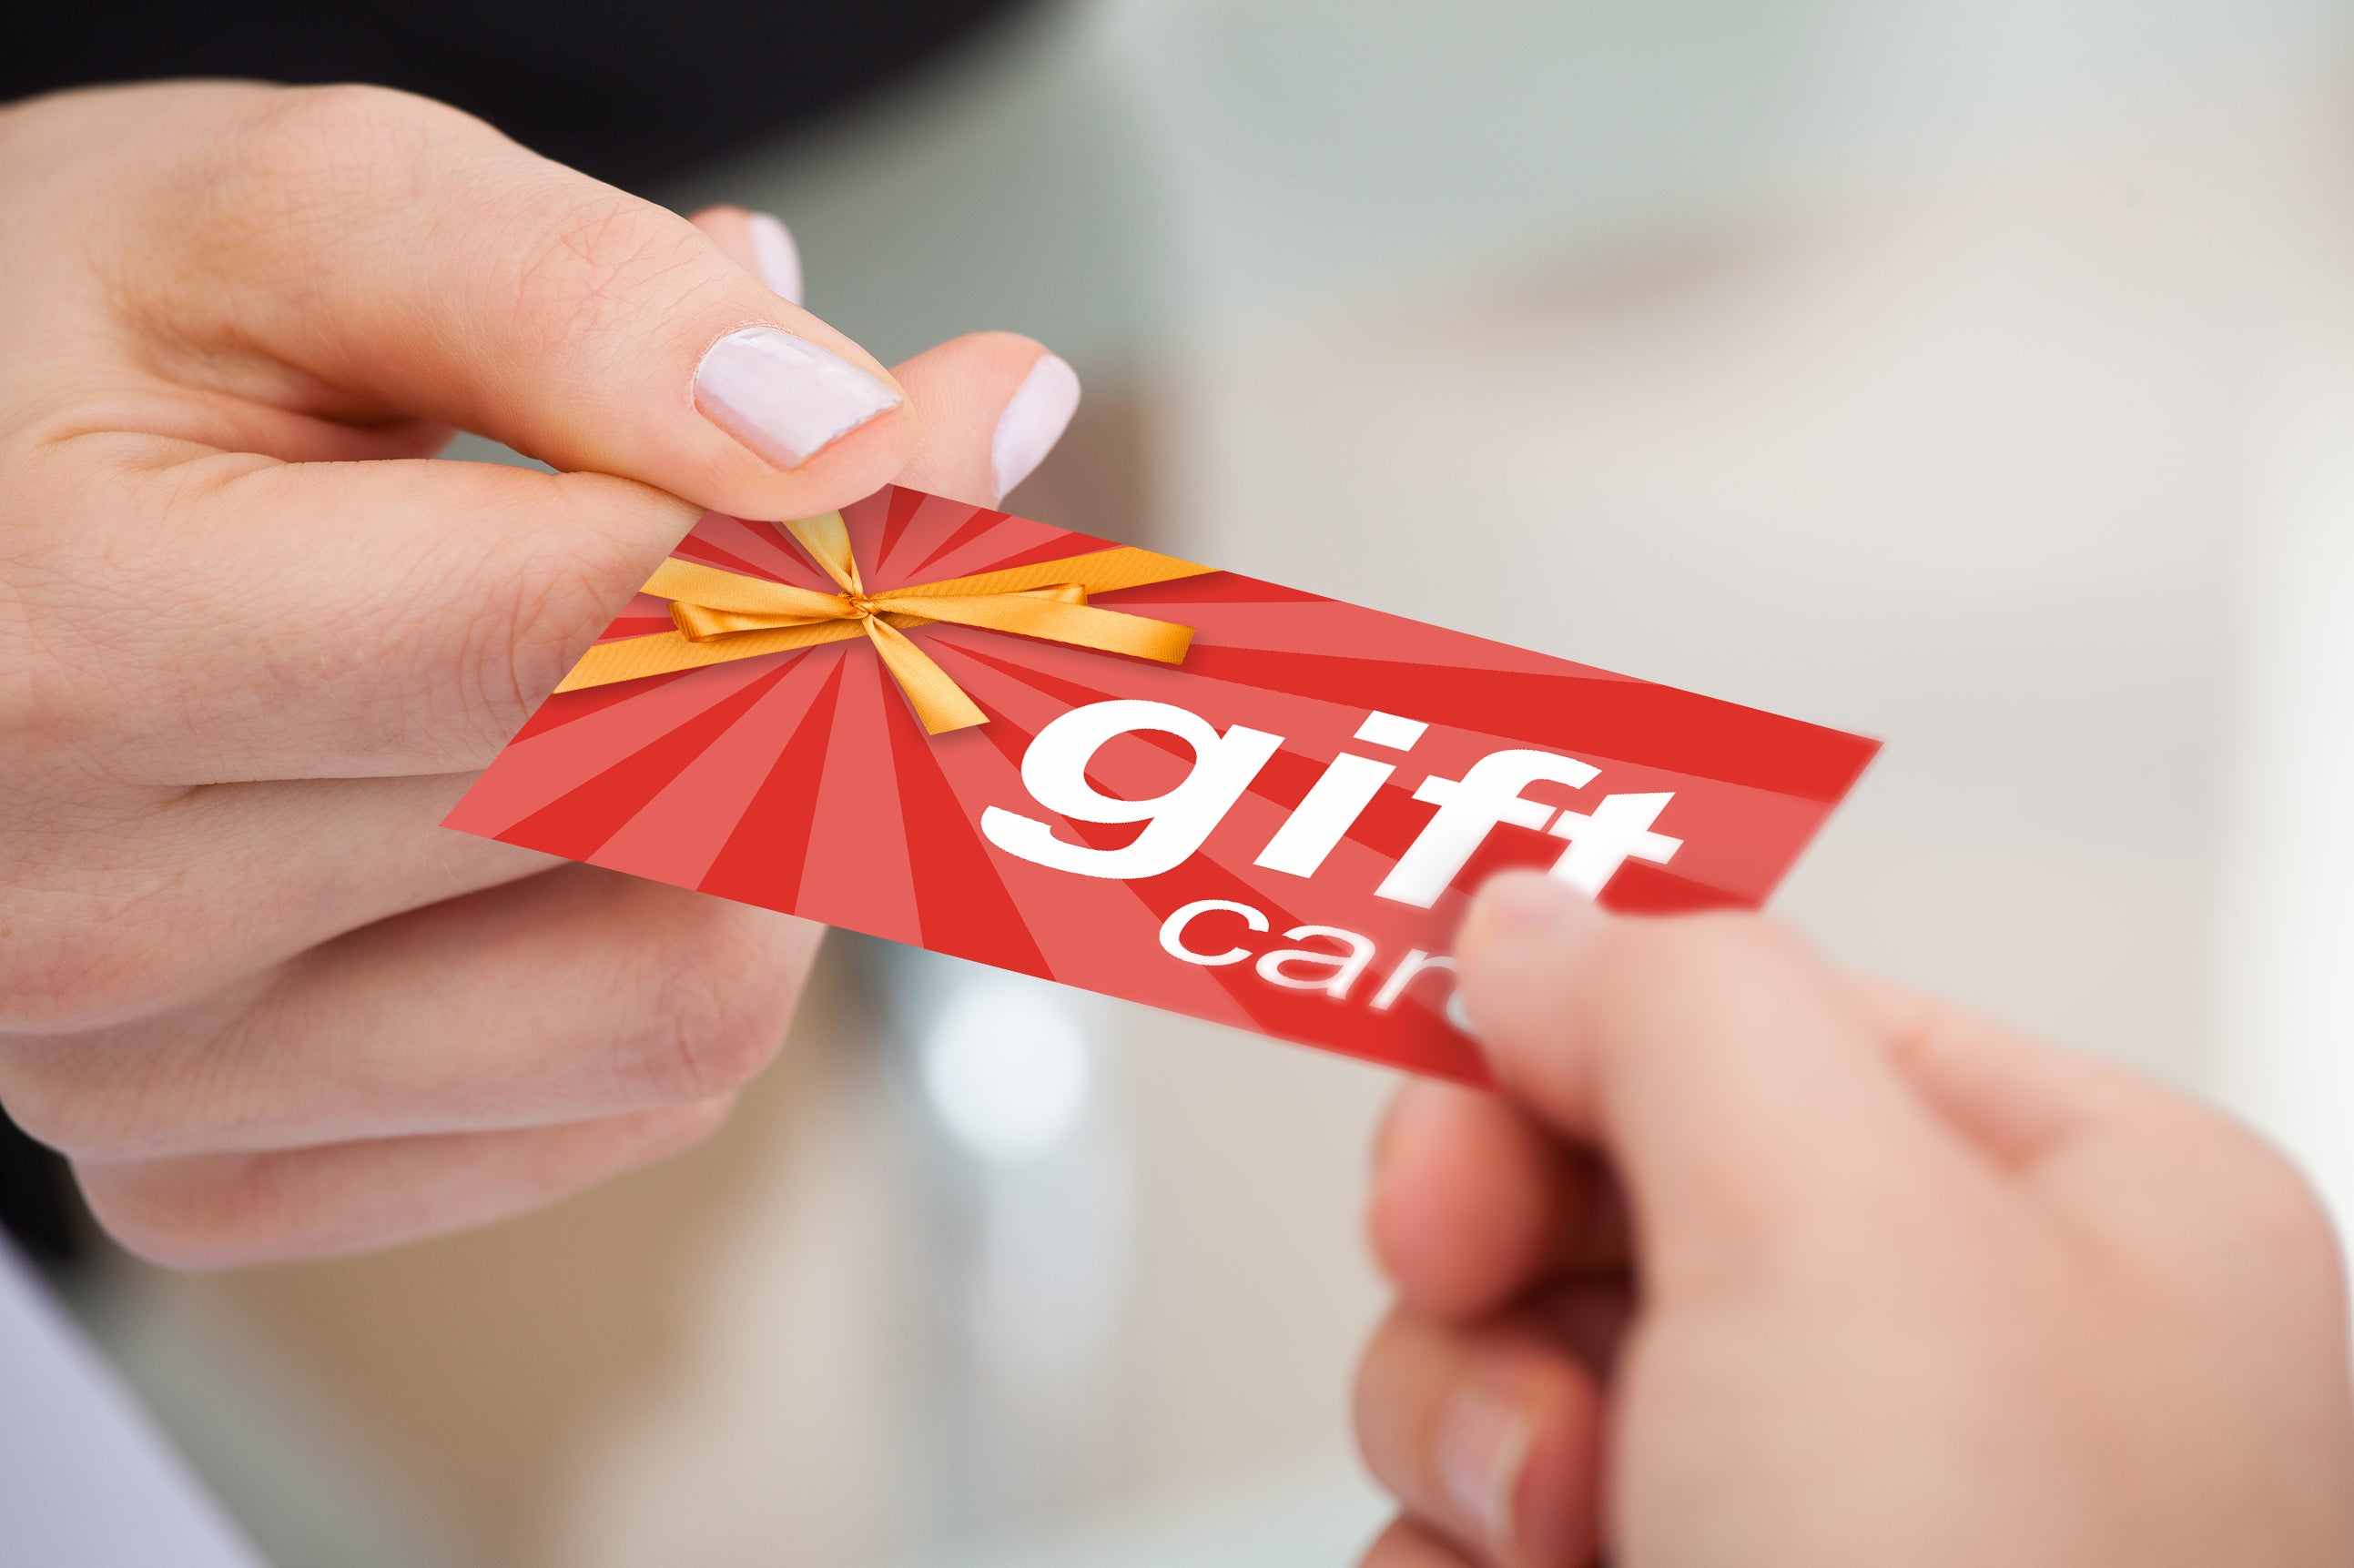 Handing over a gift card